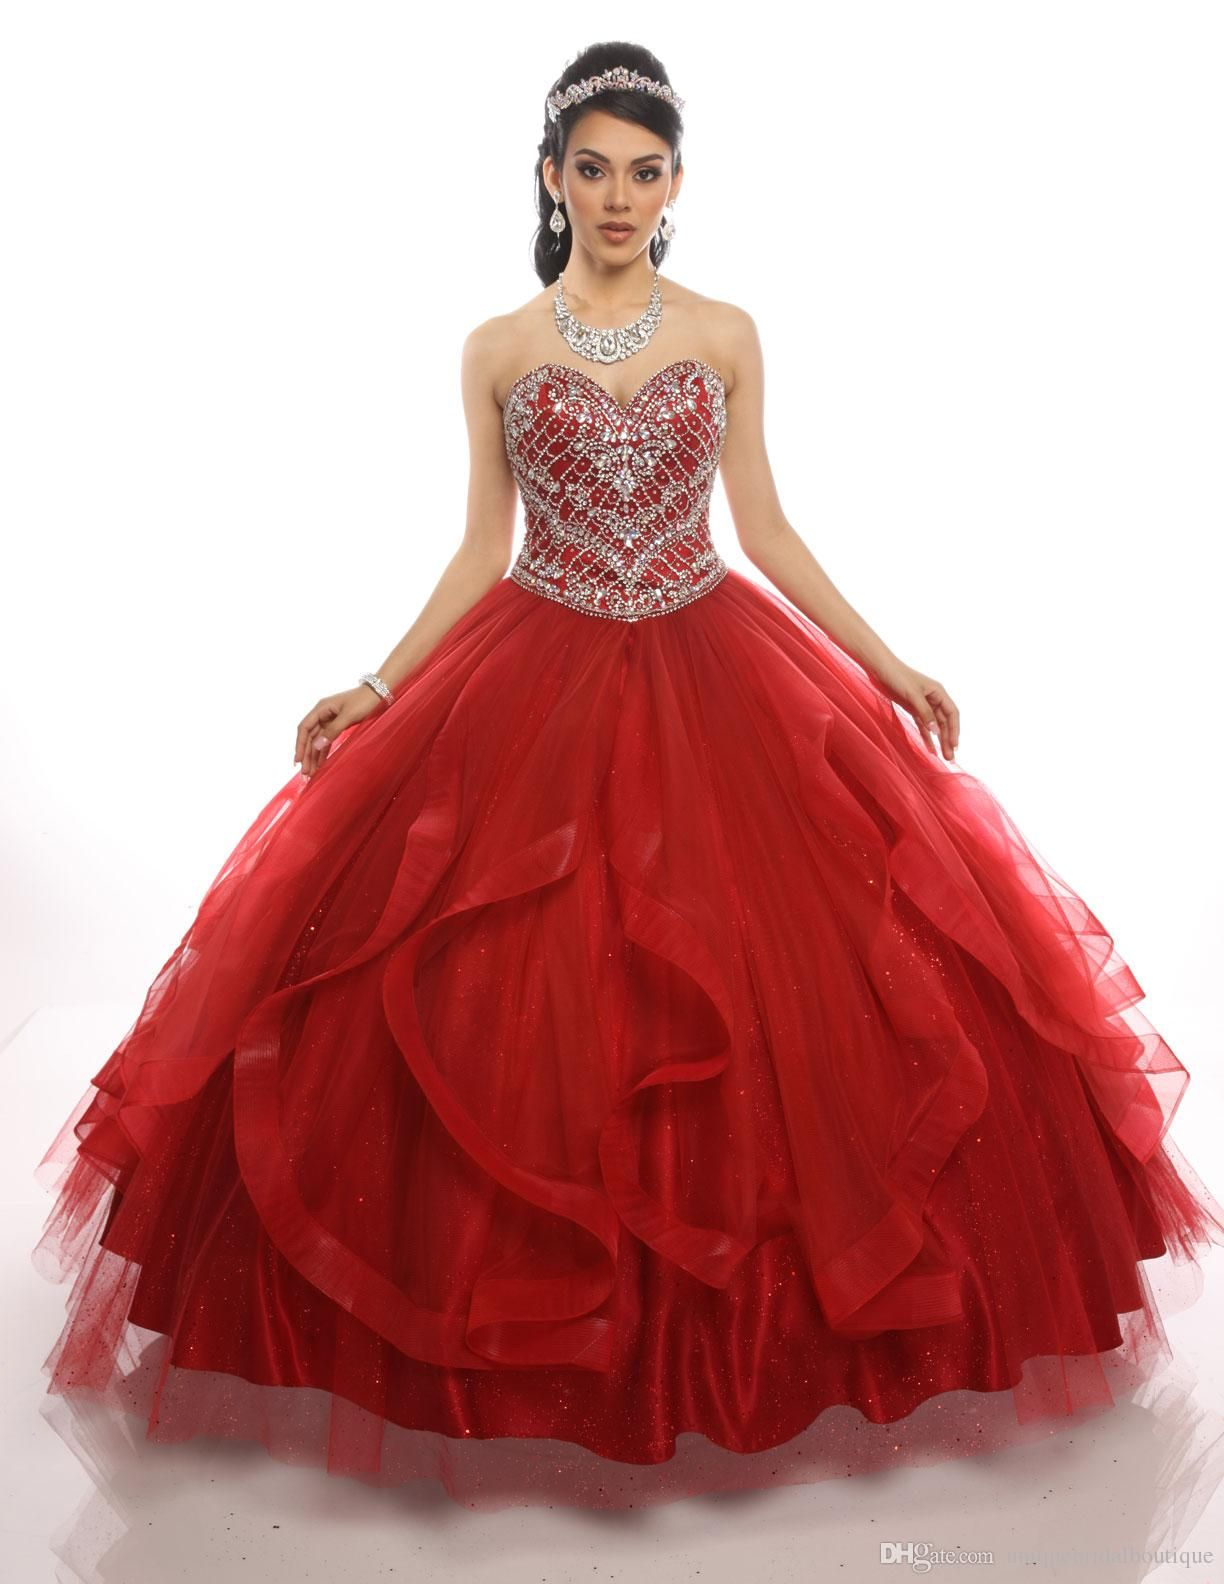 Pin On 2020 Quinceanera Dresses [ 1584 x 1224 Pixel ]